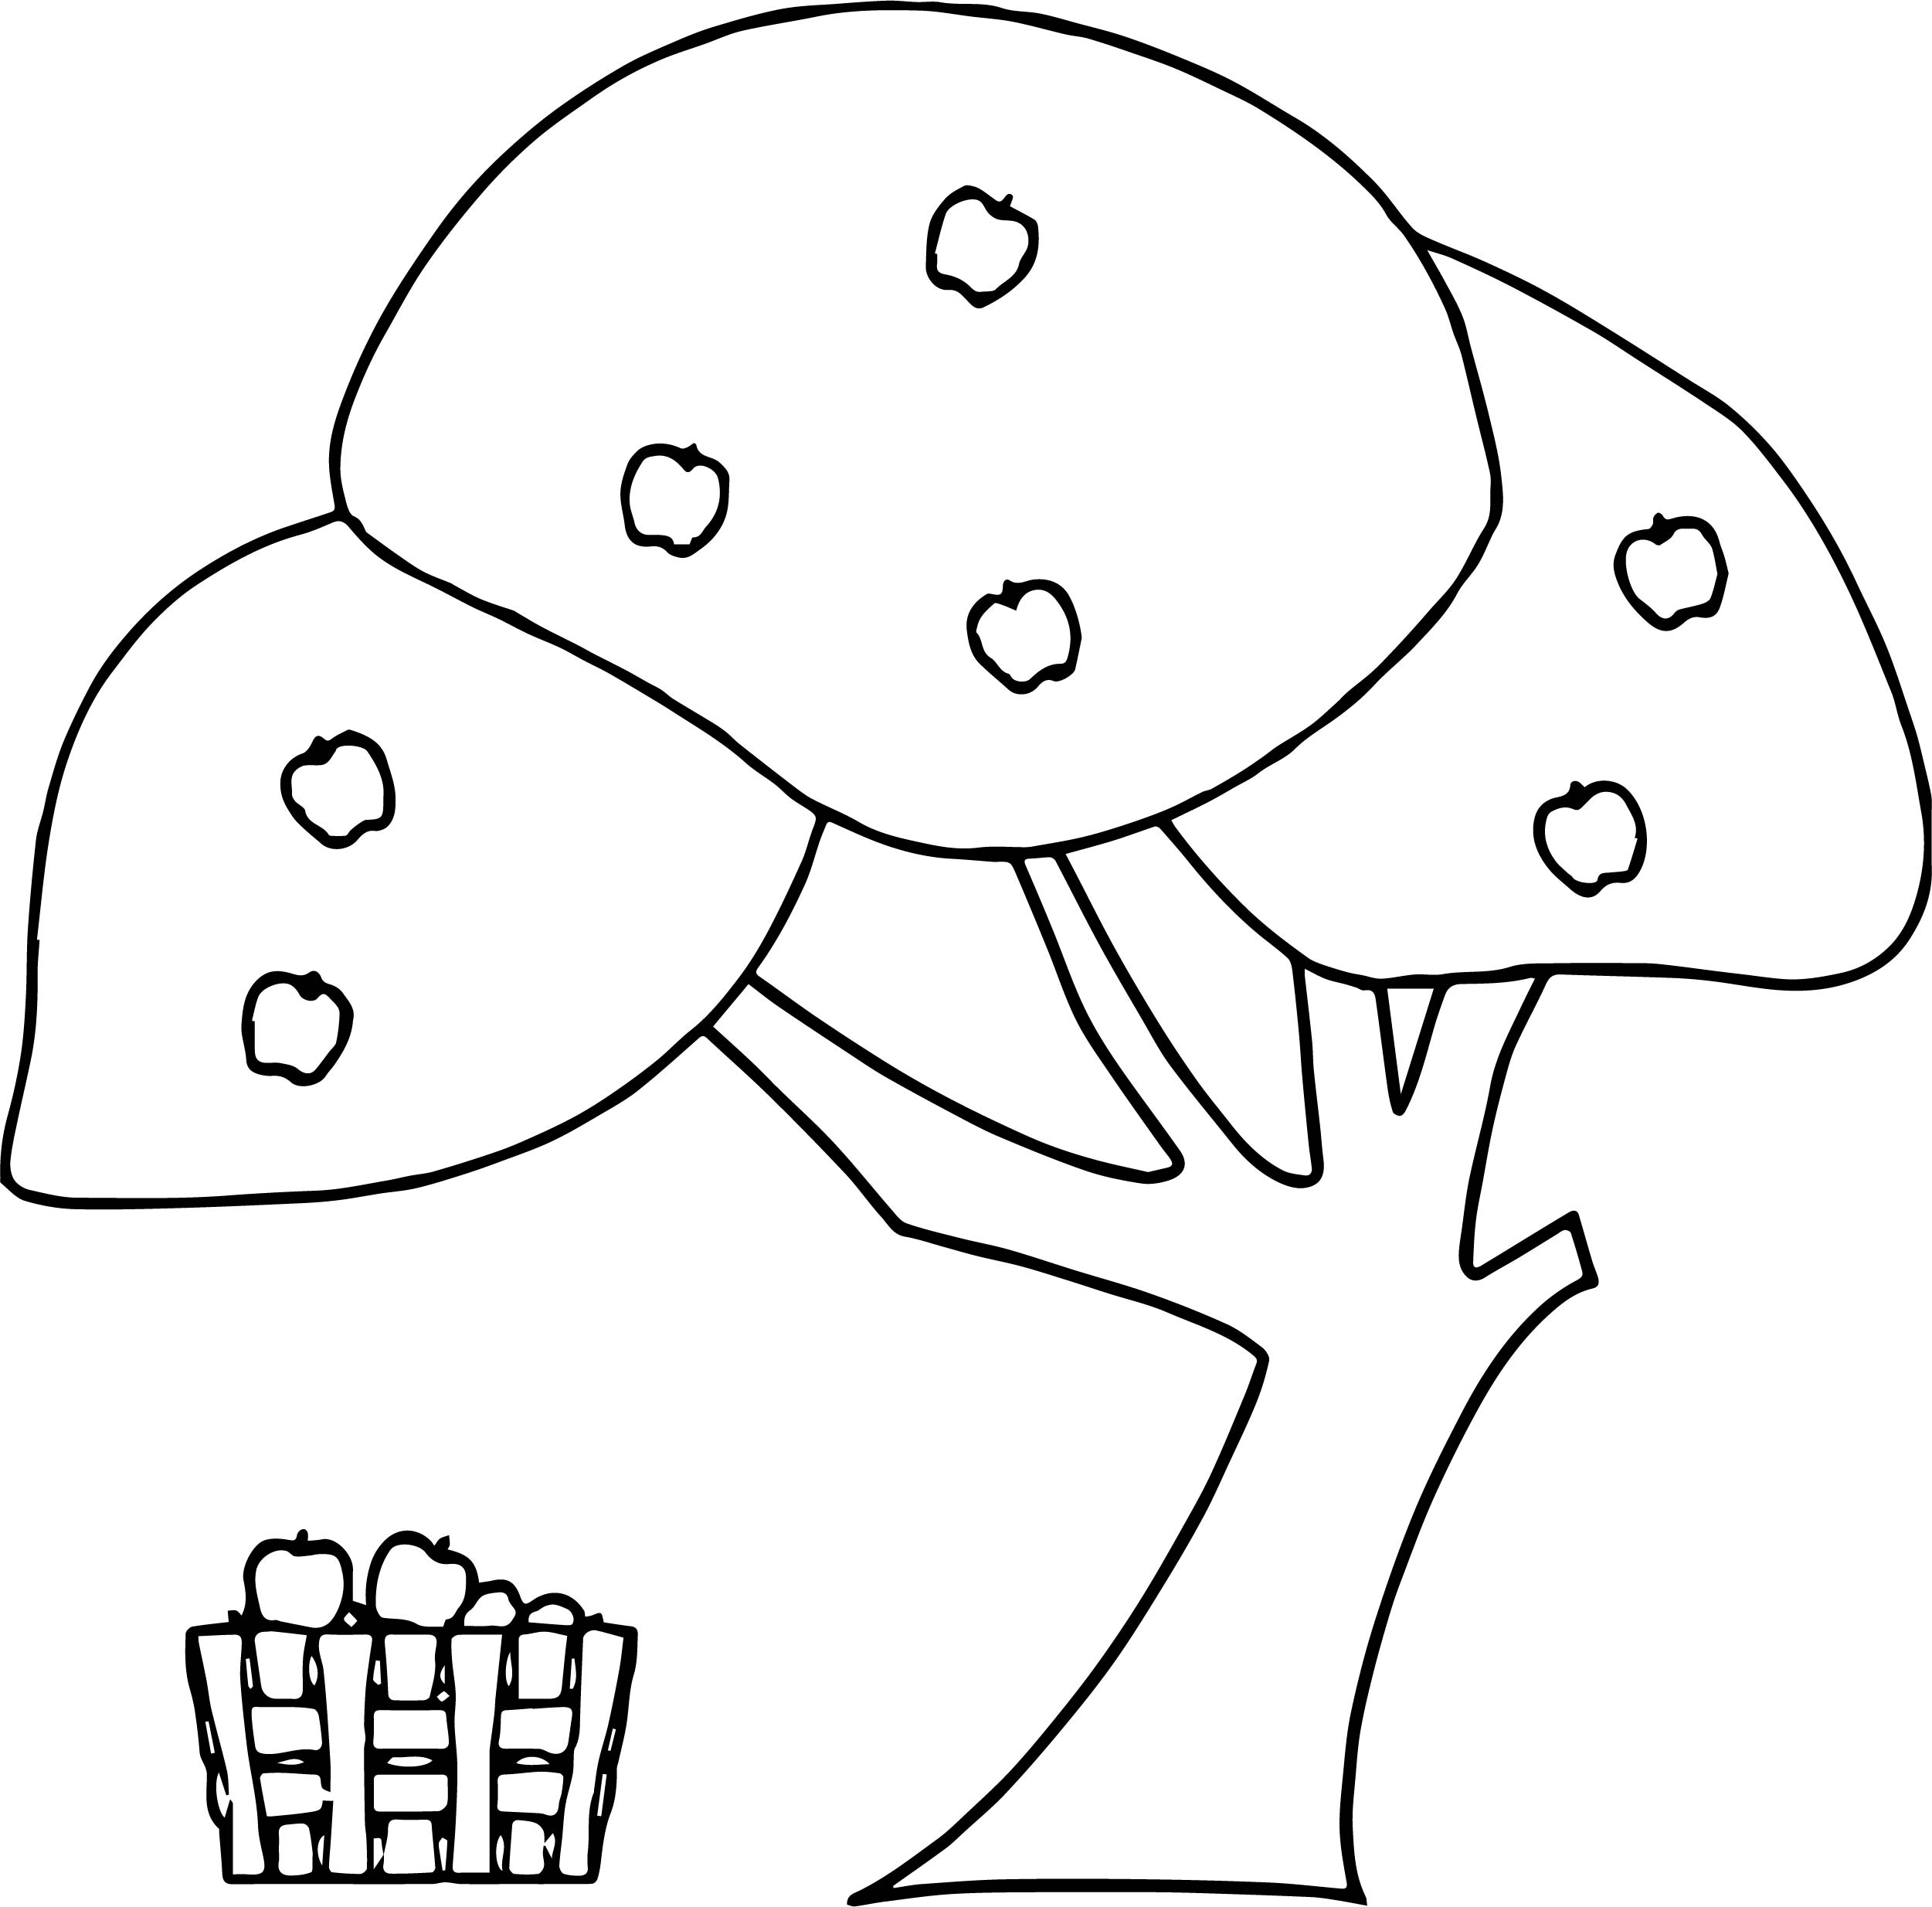 Apple Tree Basket Coloring Page